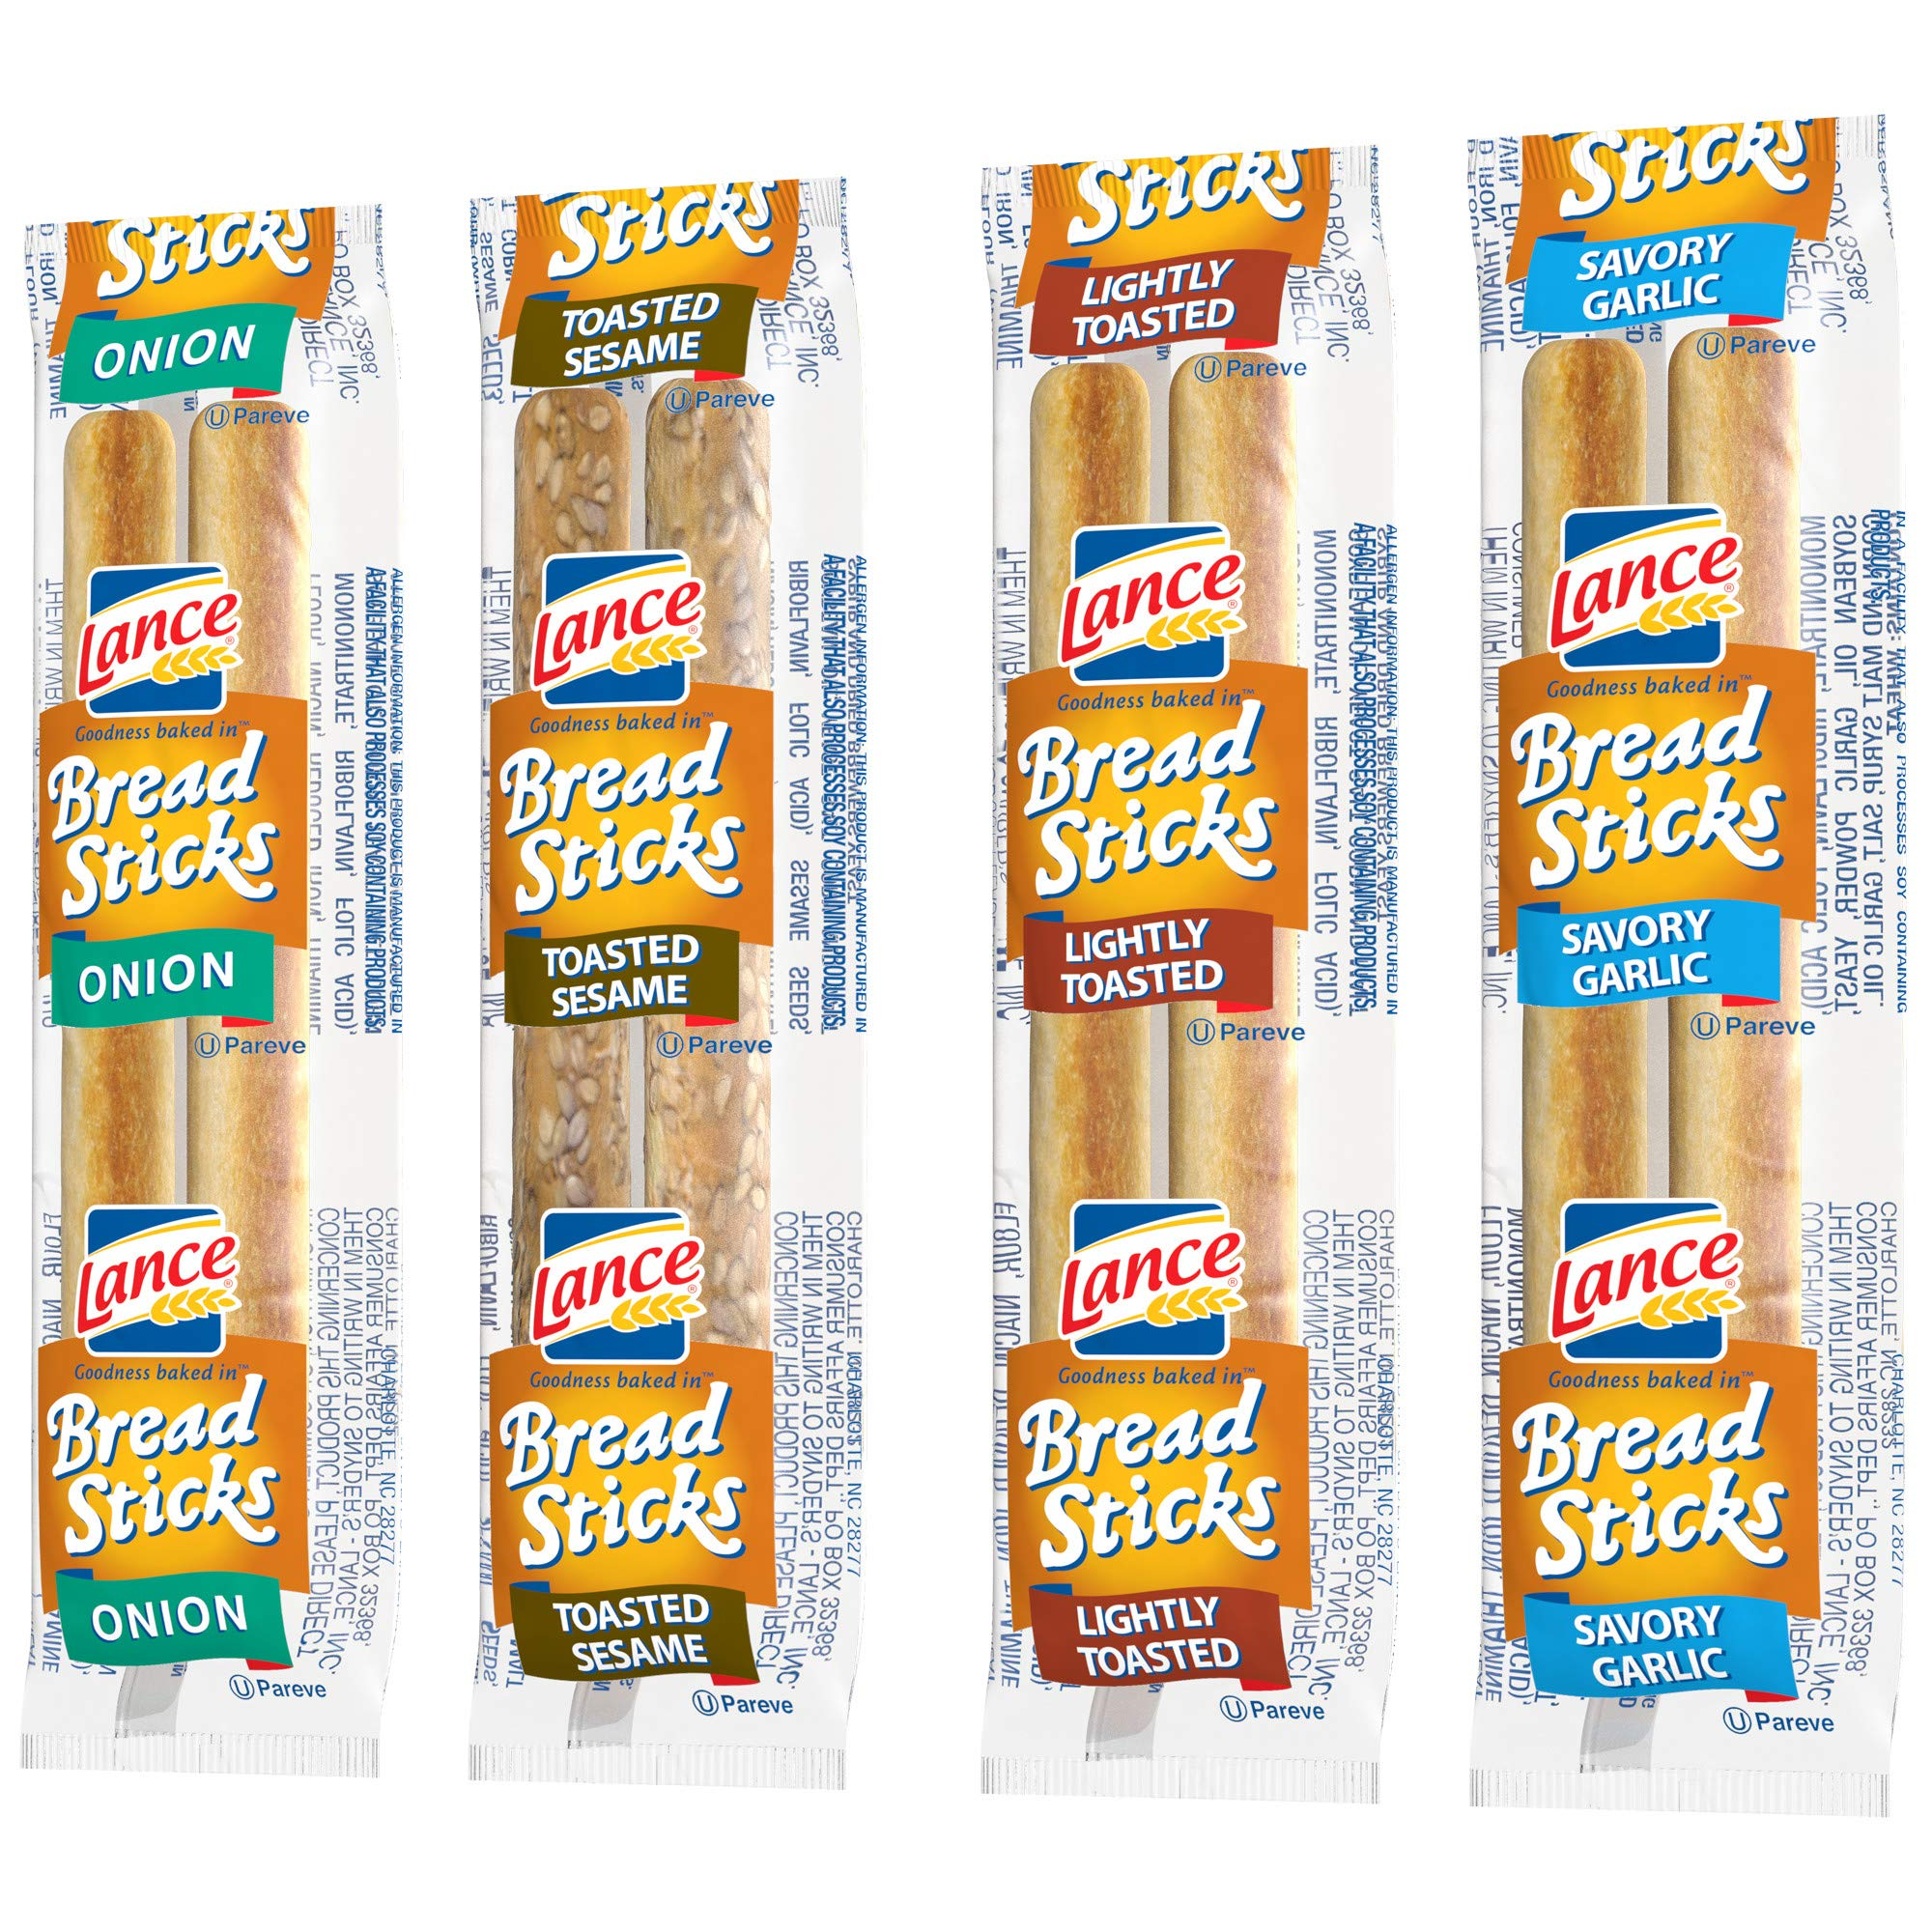 Lance Variety Breadsticks (4 Flavors), 2 Pieces per Pack, 500 Count by Lance (Image #5)